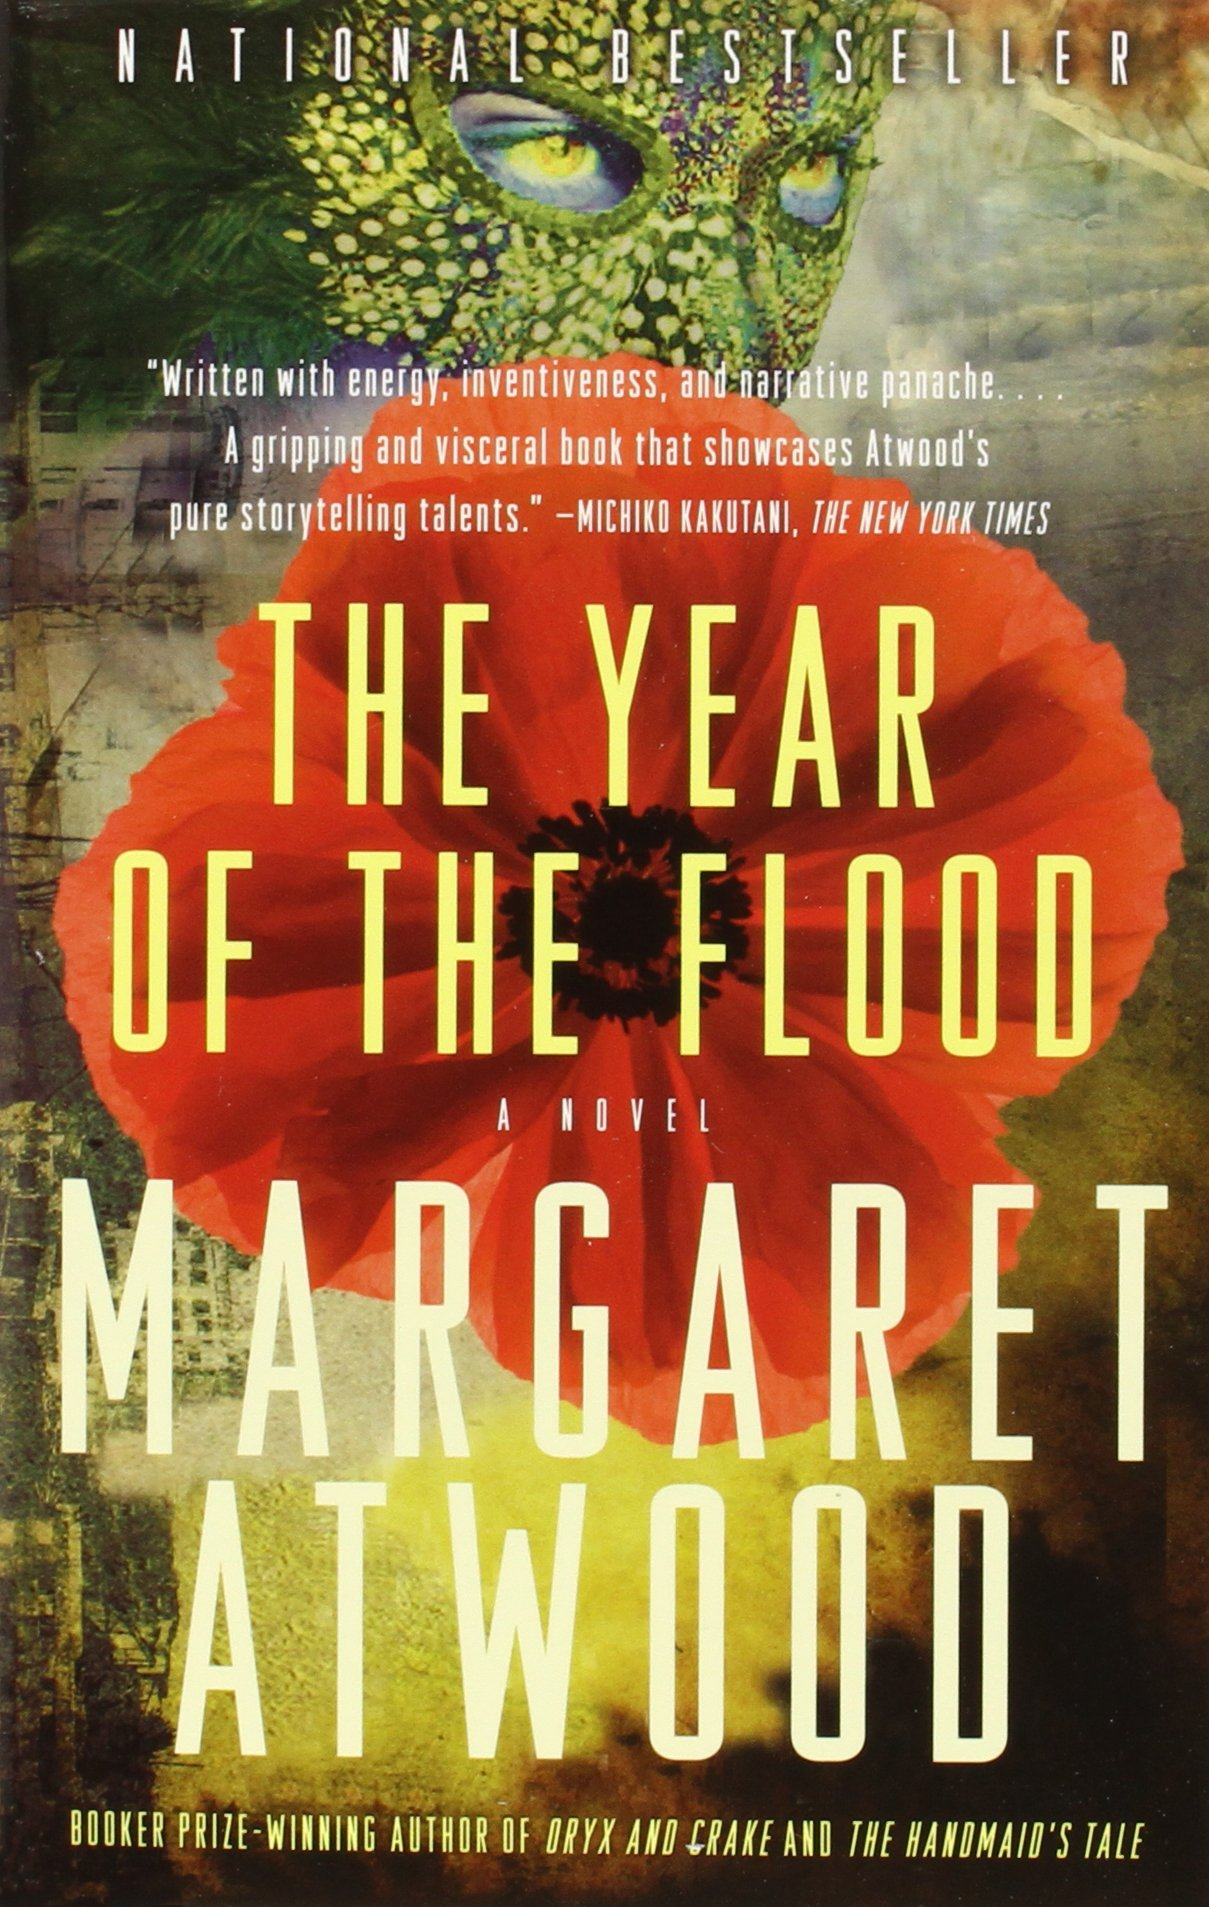 oryx and crake essay margaret atwood on the science behind oryx  maddaddam trilogy box oryx crake the year of the flood maddaddam trilogy box oryx crake the margaret atwood